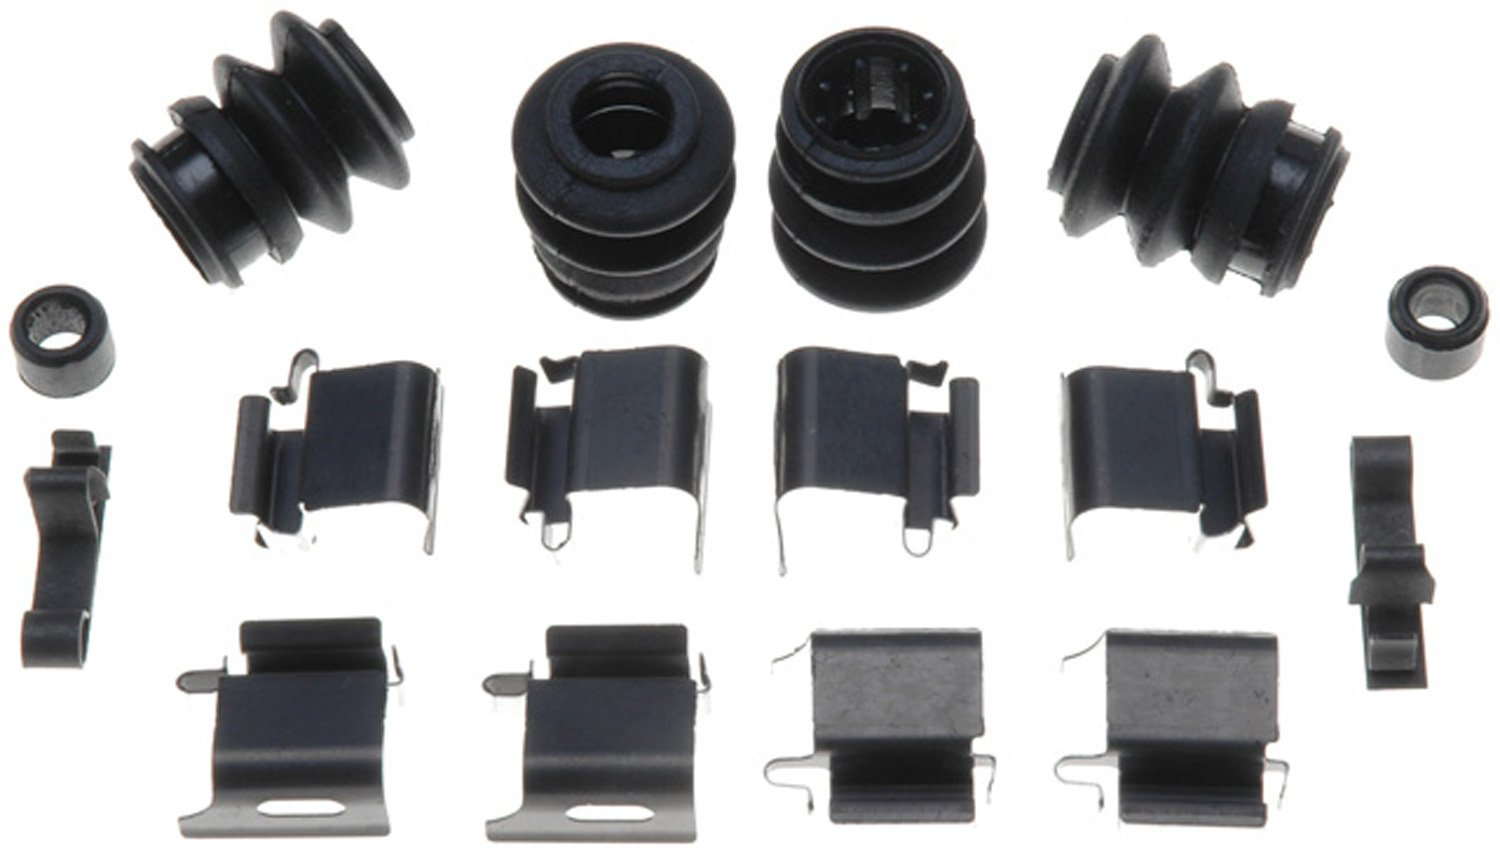 ACDelco 18K1667X Professional Front Disc Brake Caliper Hardware Kit with Clips, Seals, and Bushings by ACDelco